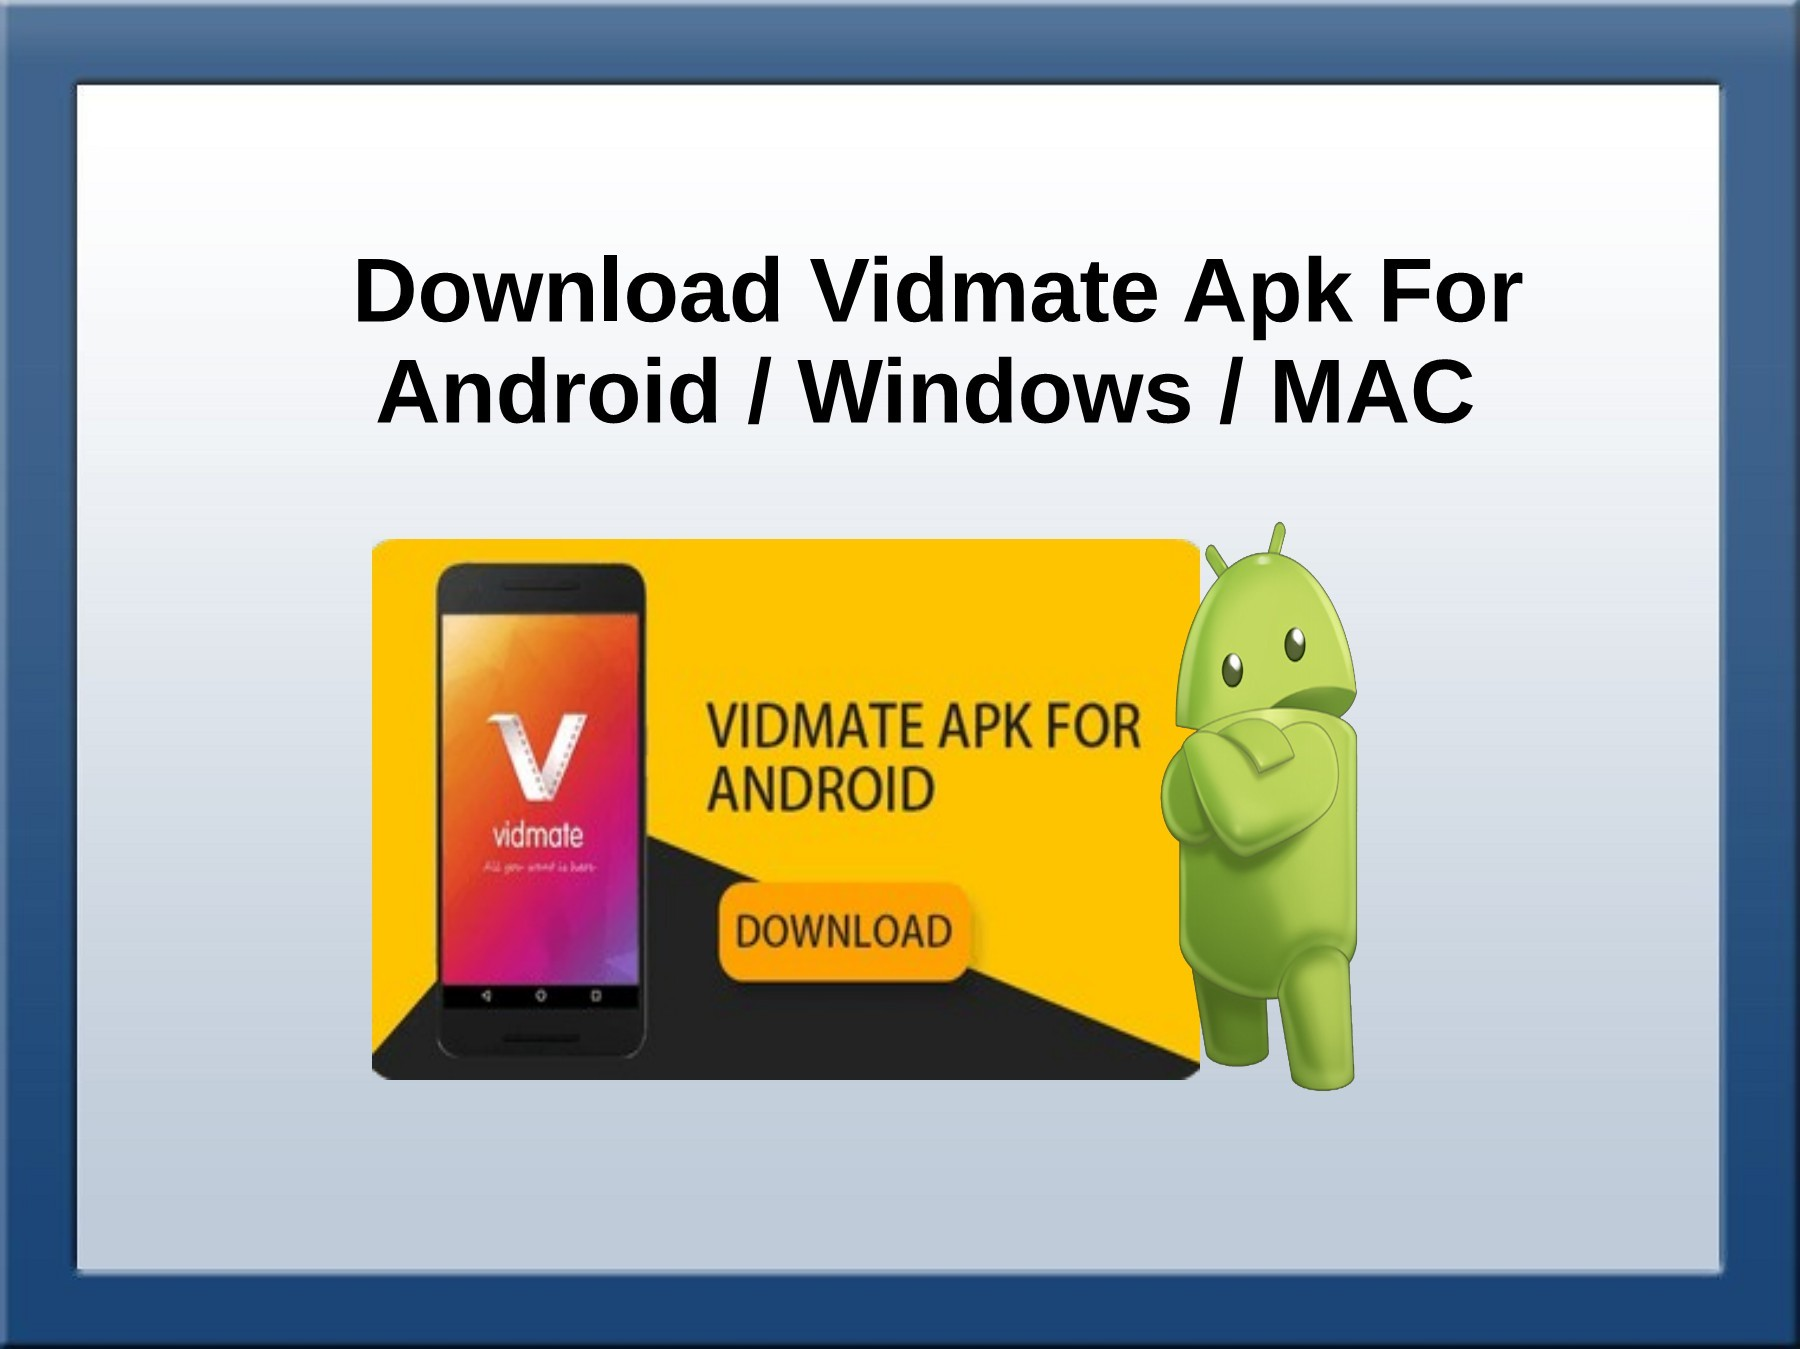 Download Vidmate Apk For Android Windows MAC | PubHTML5